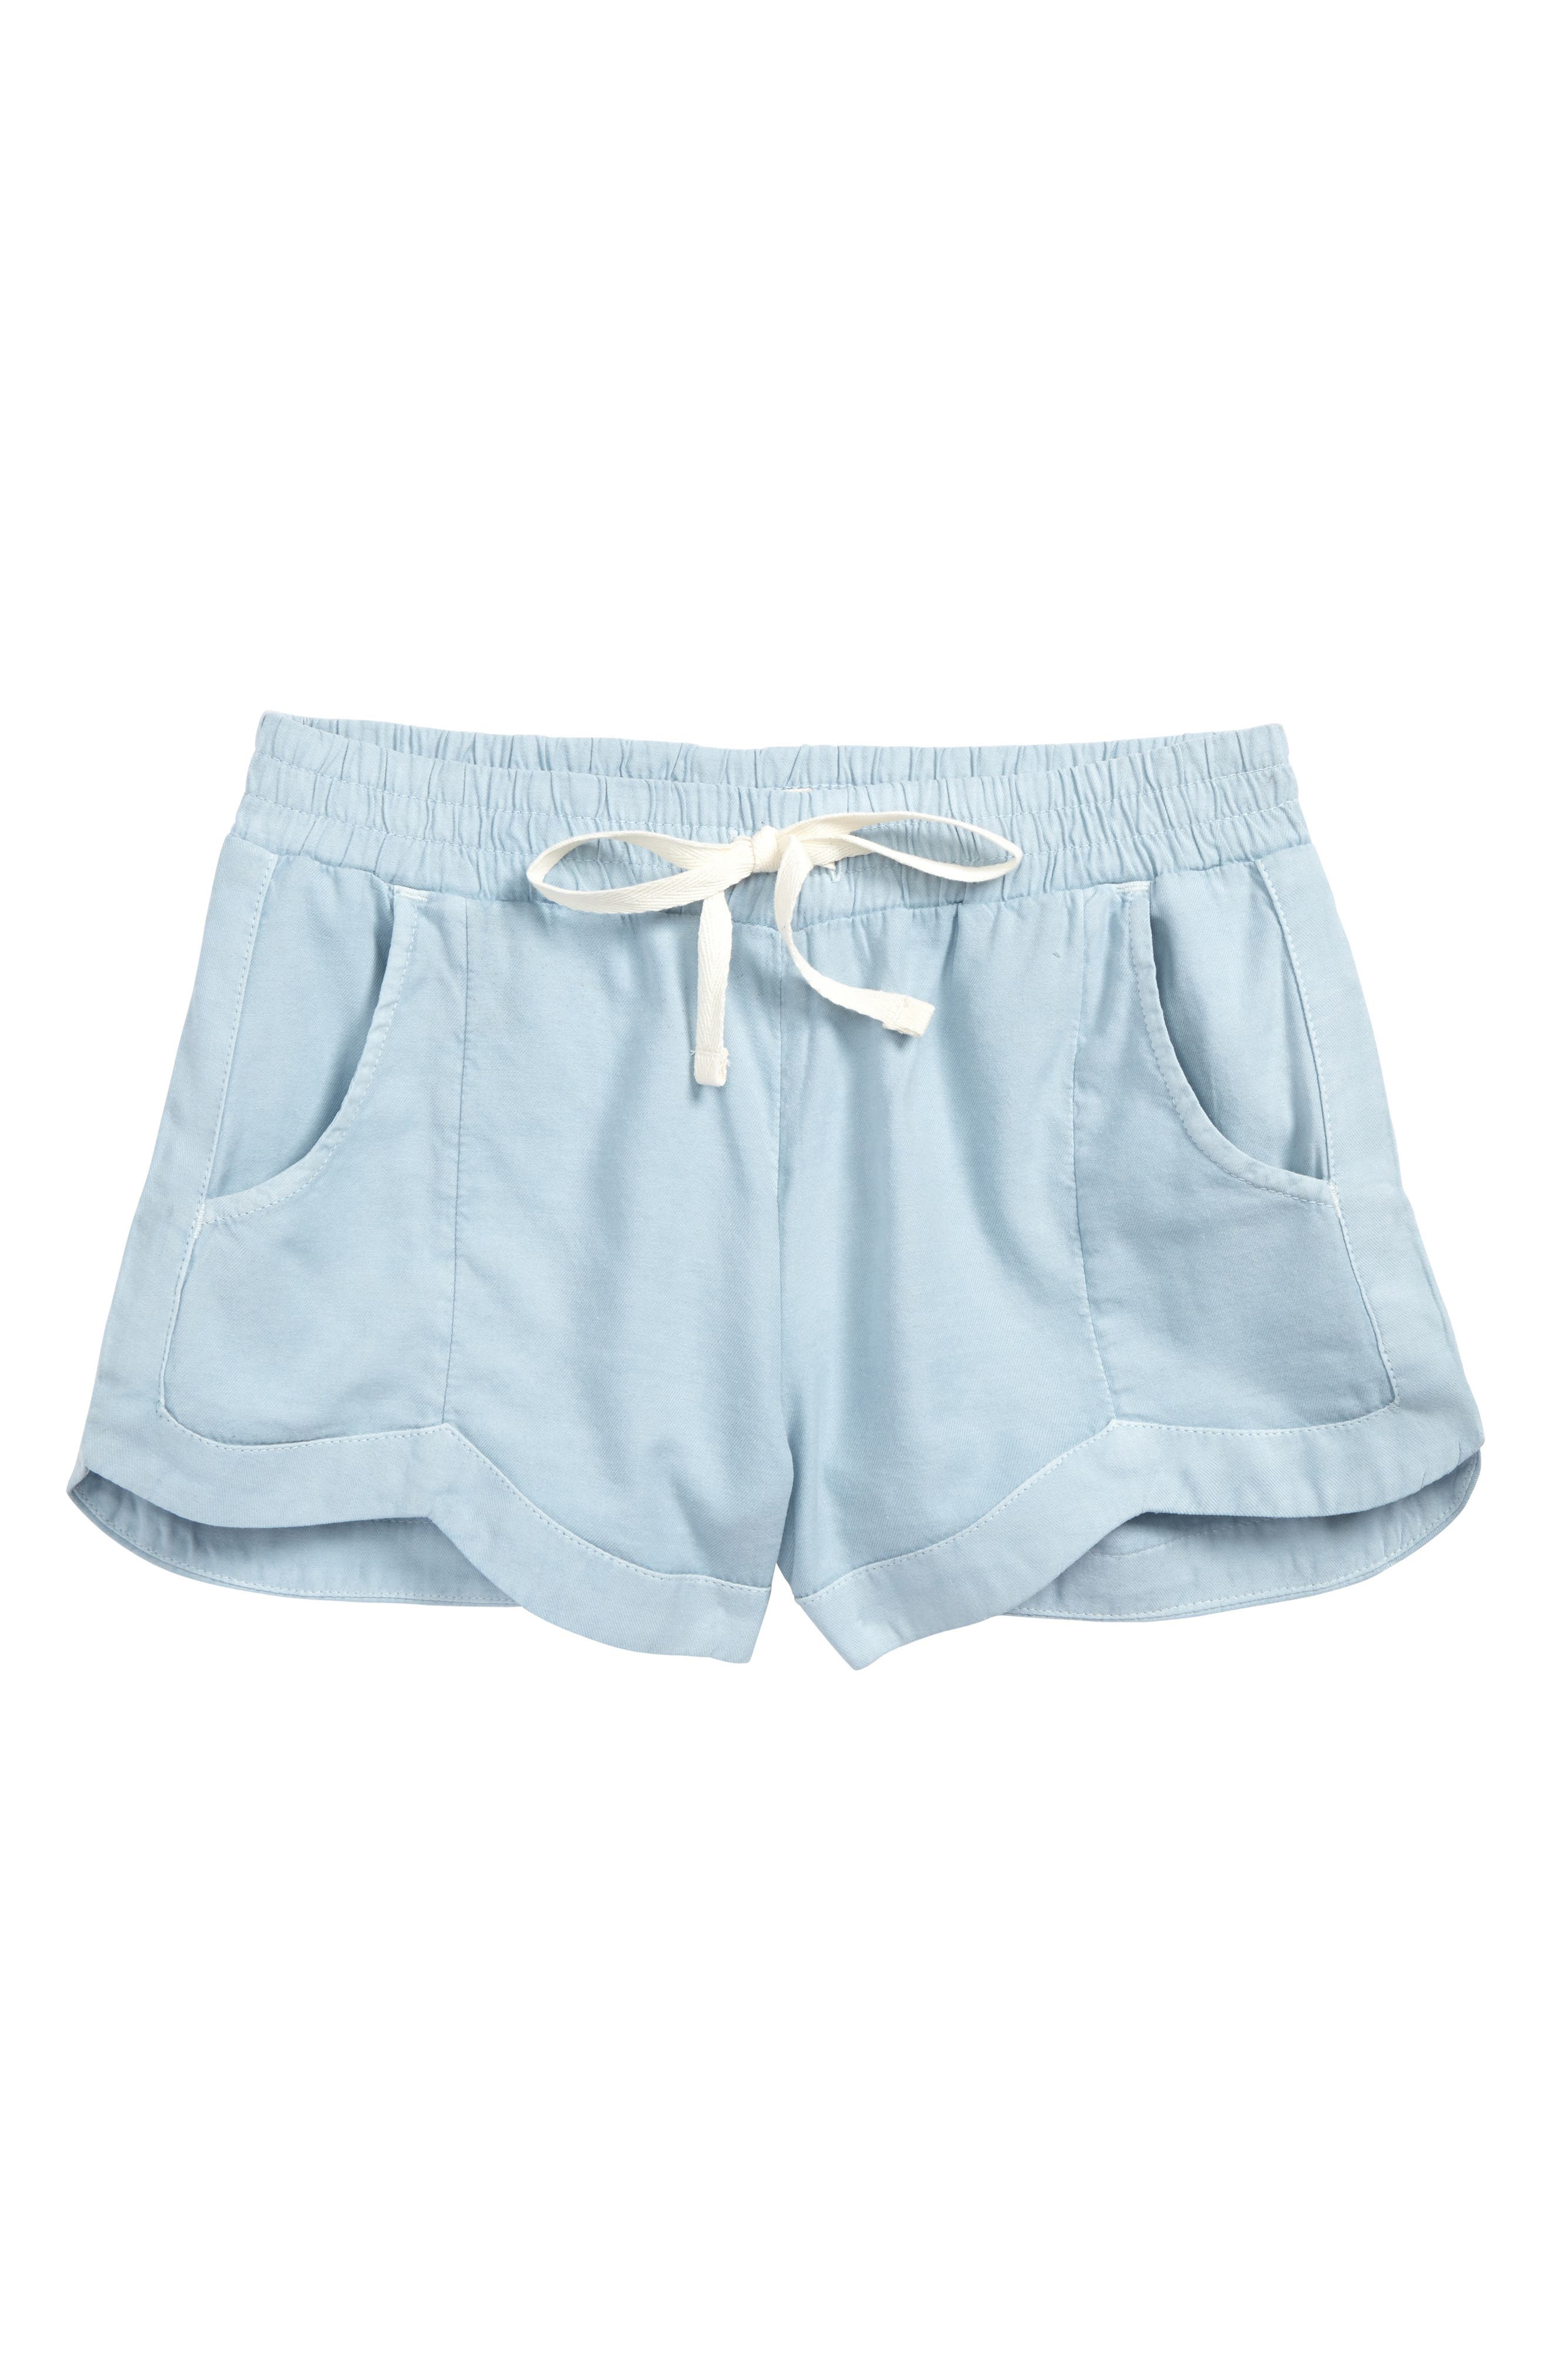 BILLABONG Made For You Woven Shorts, Main, color, CHAMBRAY